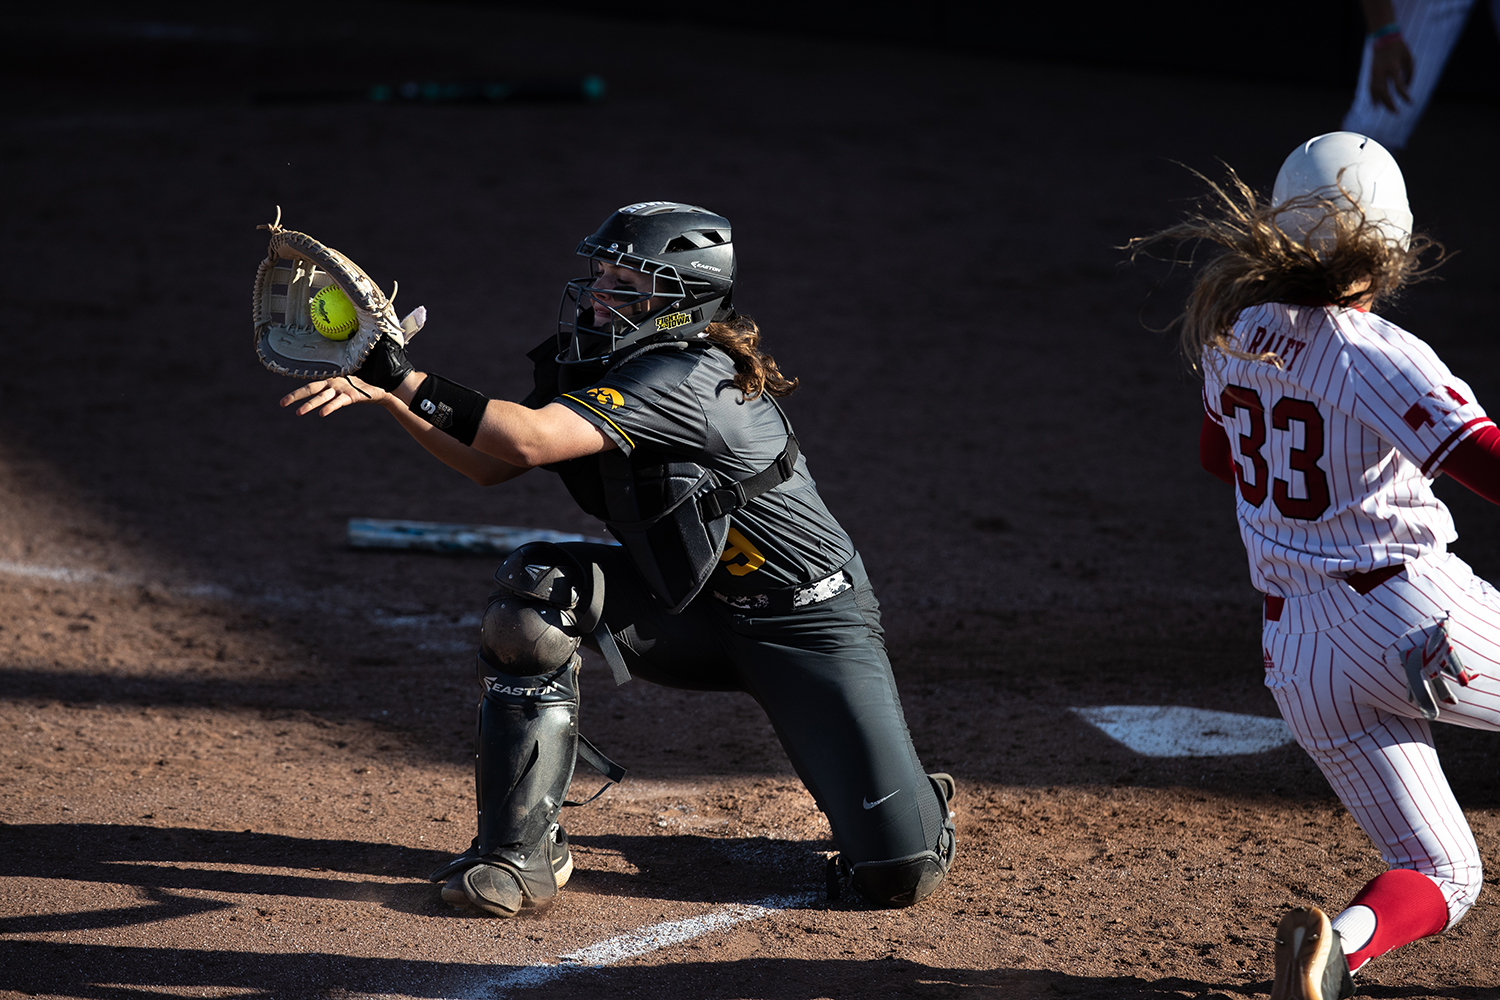 Iowa catcher Abby Lien catches a ball during the game against Nebraska at the Bob Pearl Softball Field on Wednesday, April 24, 2019.